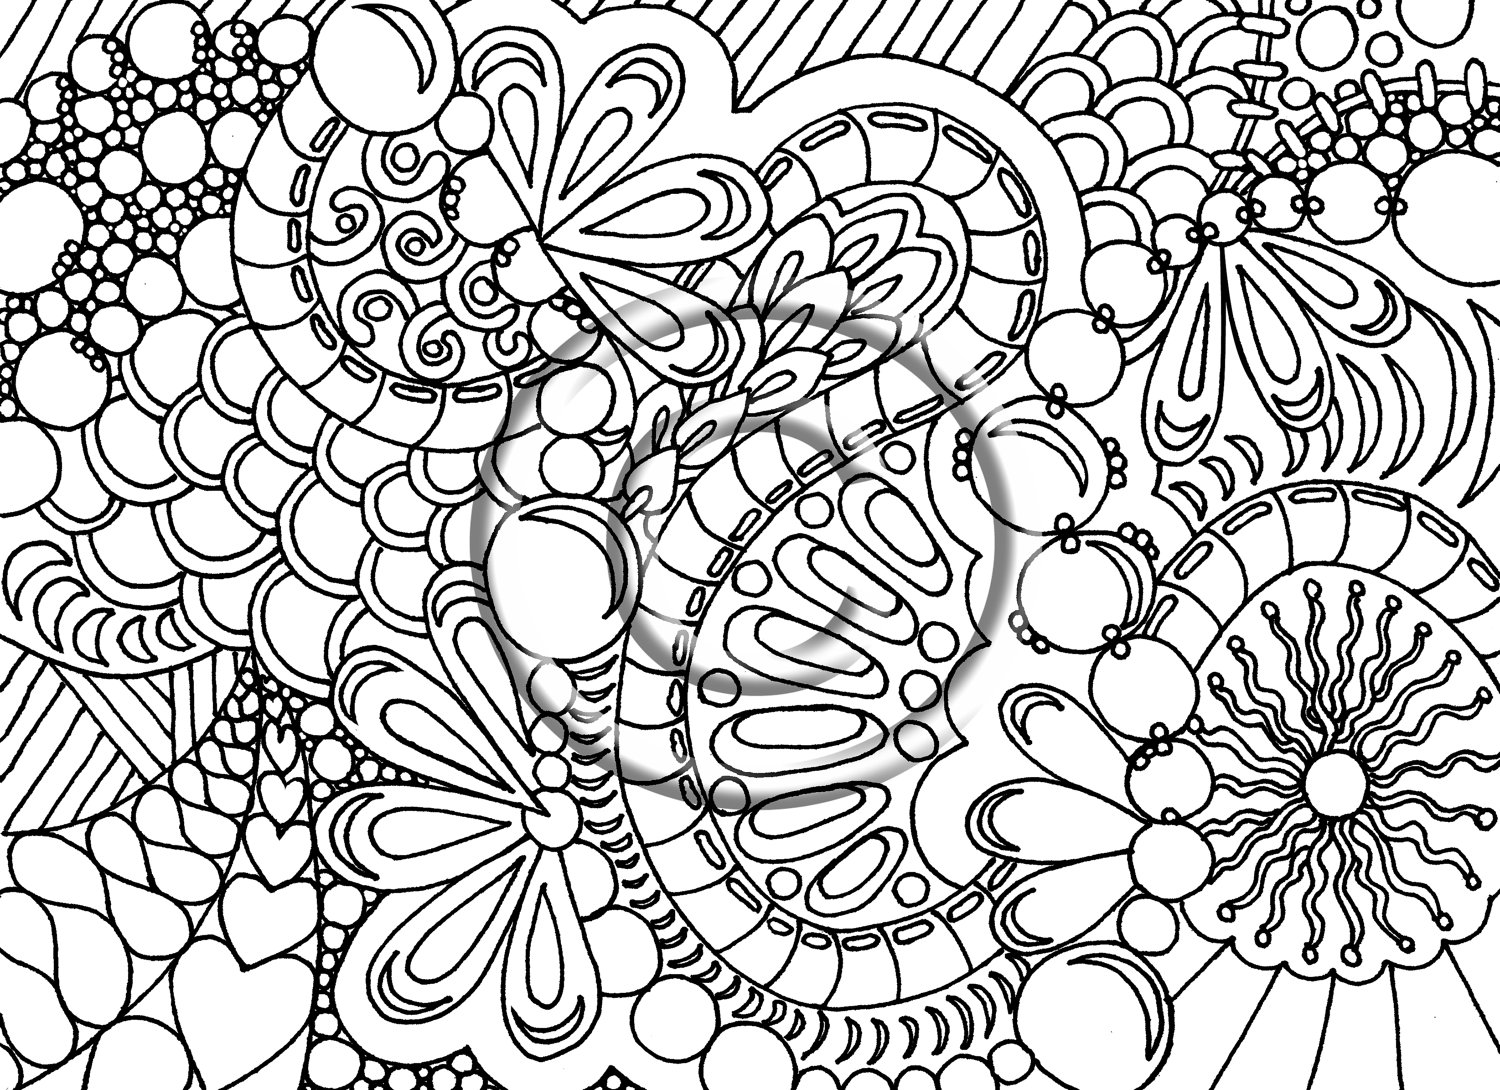 coloring pictures hard cute hard coloring pages at getcoloringscom free hard coloring pictures